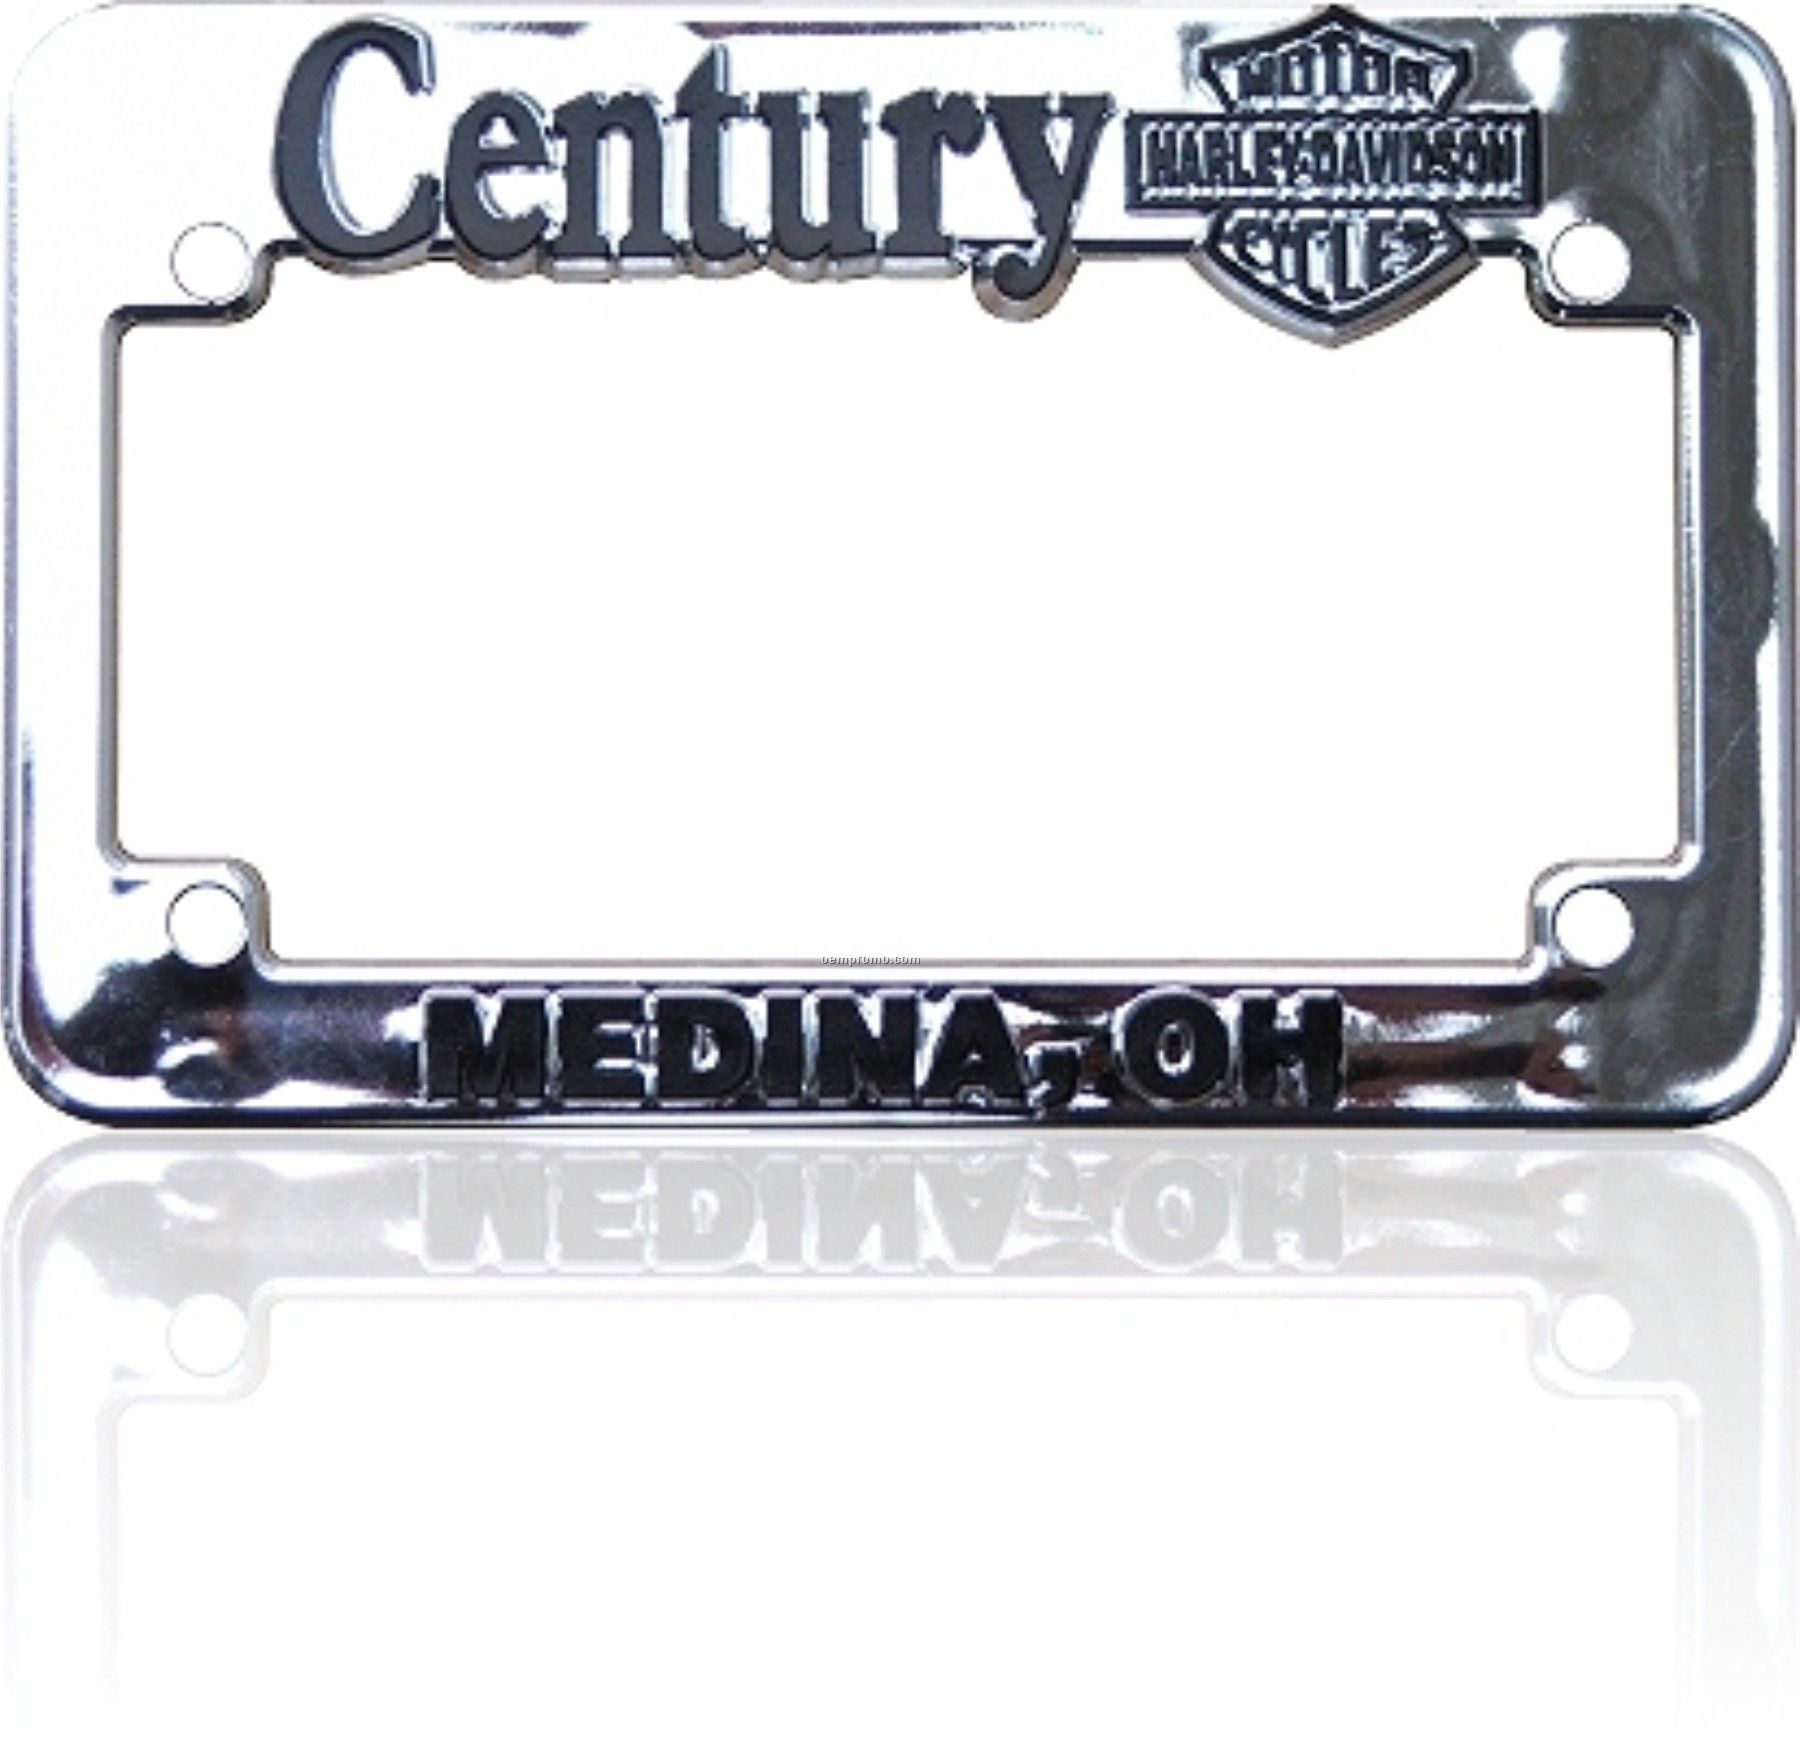 Chrome Motorcycle License Plate Frame With Raised Letters